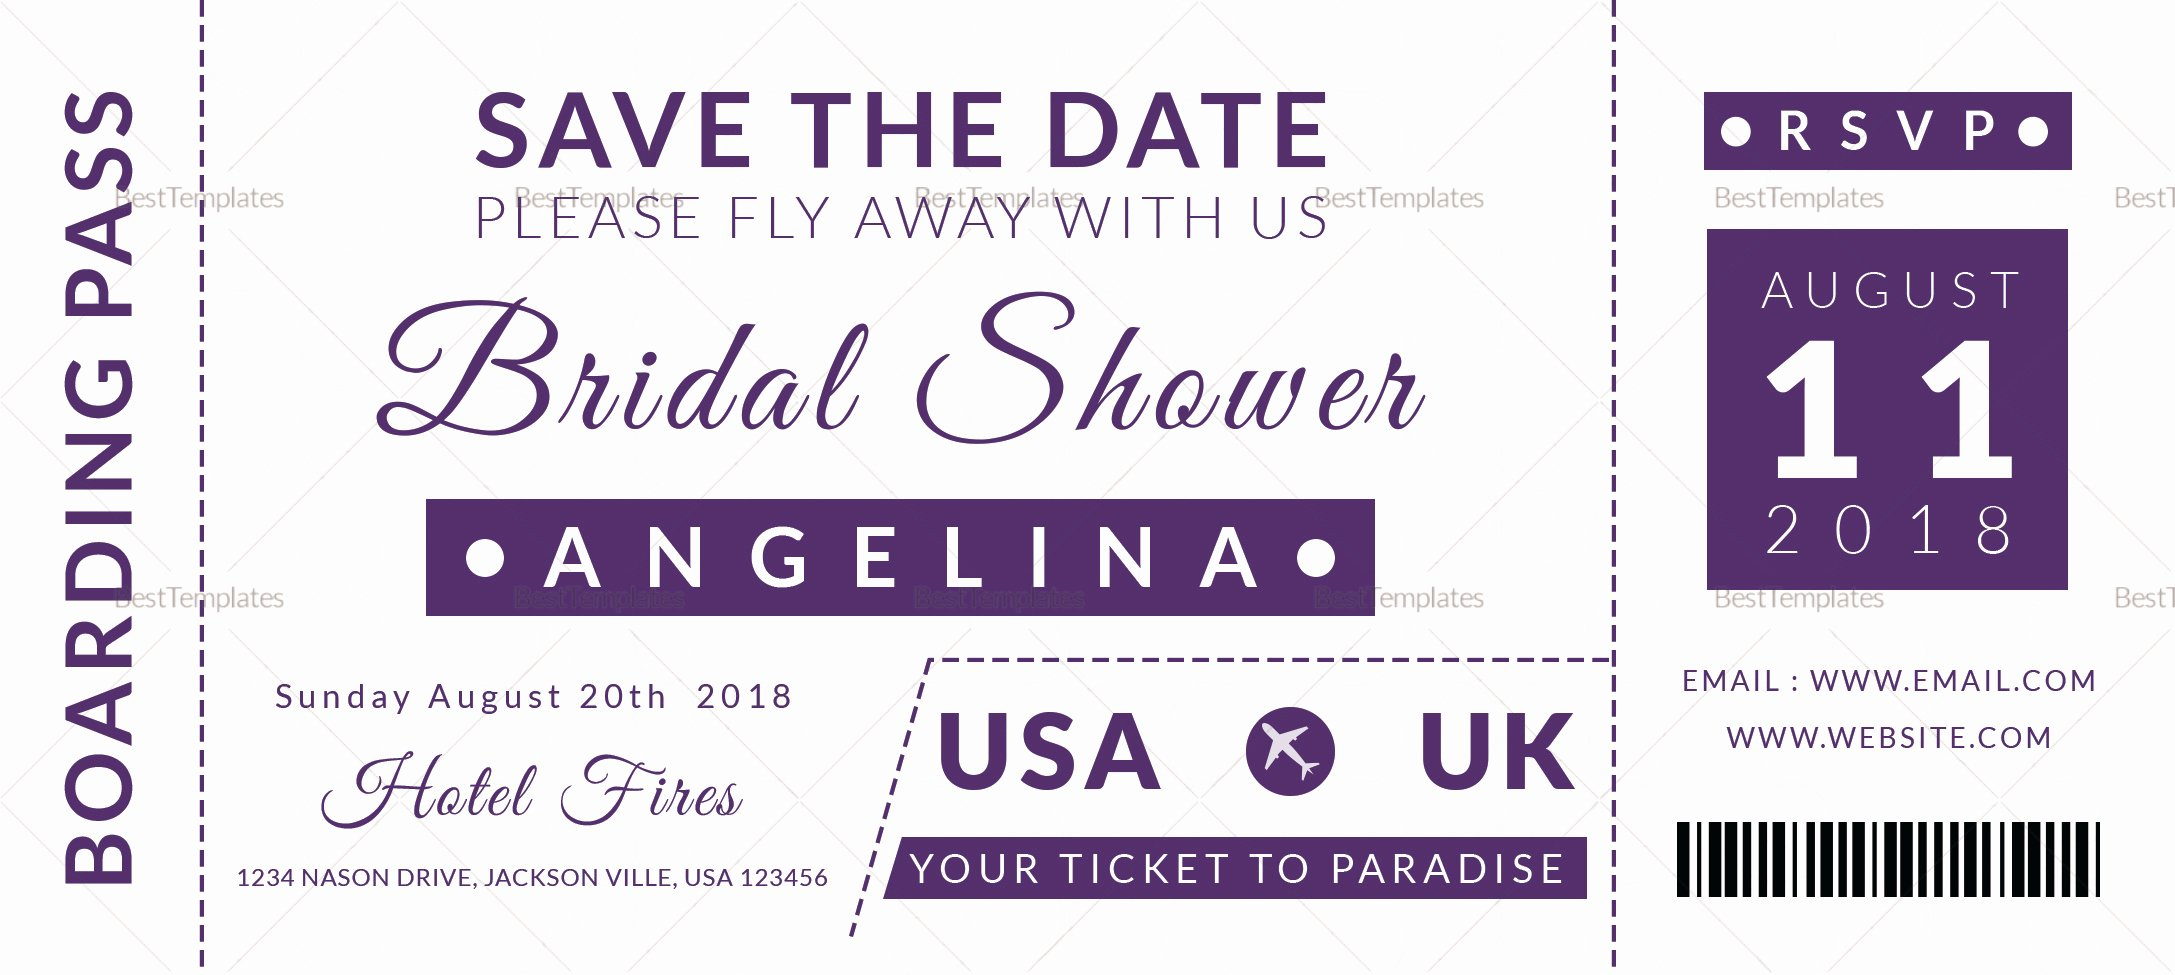 Boarding Pass Template Photoshop Inspirational Bridal Shower Boarding Pass Ticket Design Template In Psd